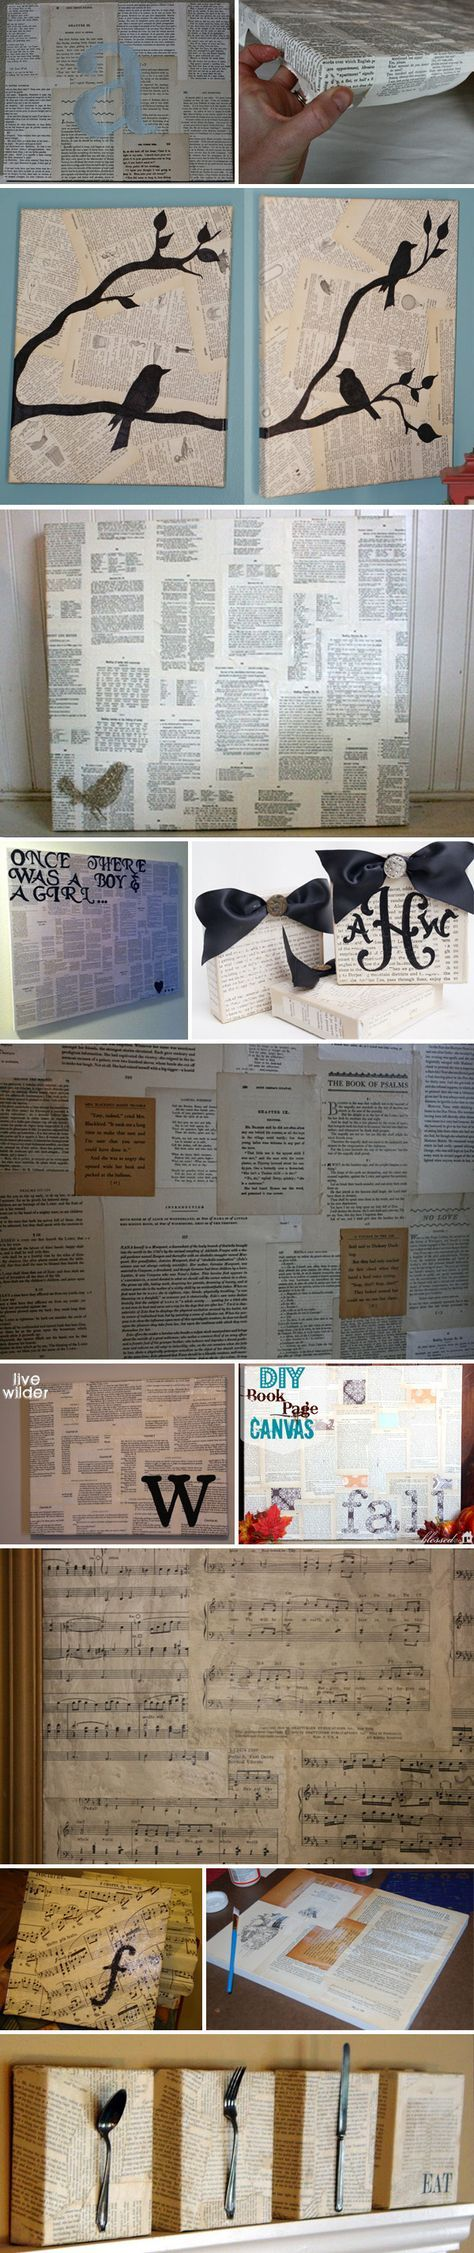 BOOK CRAFT / WALL ART :: Tons of INSPIRATION for Book Page (& Sheet Music) Wall Art :: Click for a tute on how to Mod Podge a canvas w/ book pages. Try adding in scrap book paper, turning the pages, adding a monogram stenciled, bows or objects (like utensils or keys?) on top, using various shades of antiqued pages or adding illustrations or vintage picture dictionary pages! | #bookpages #papercraft